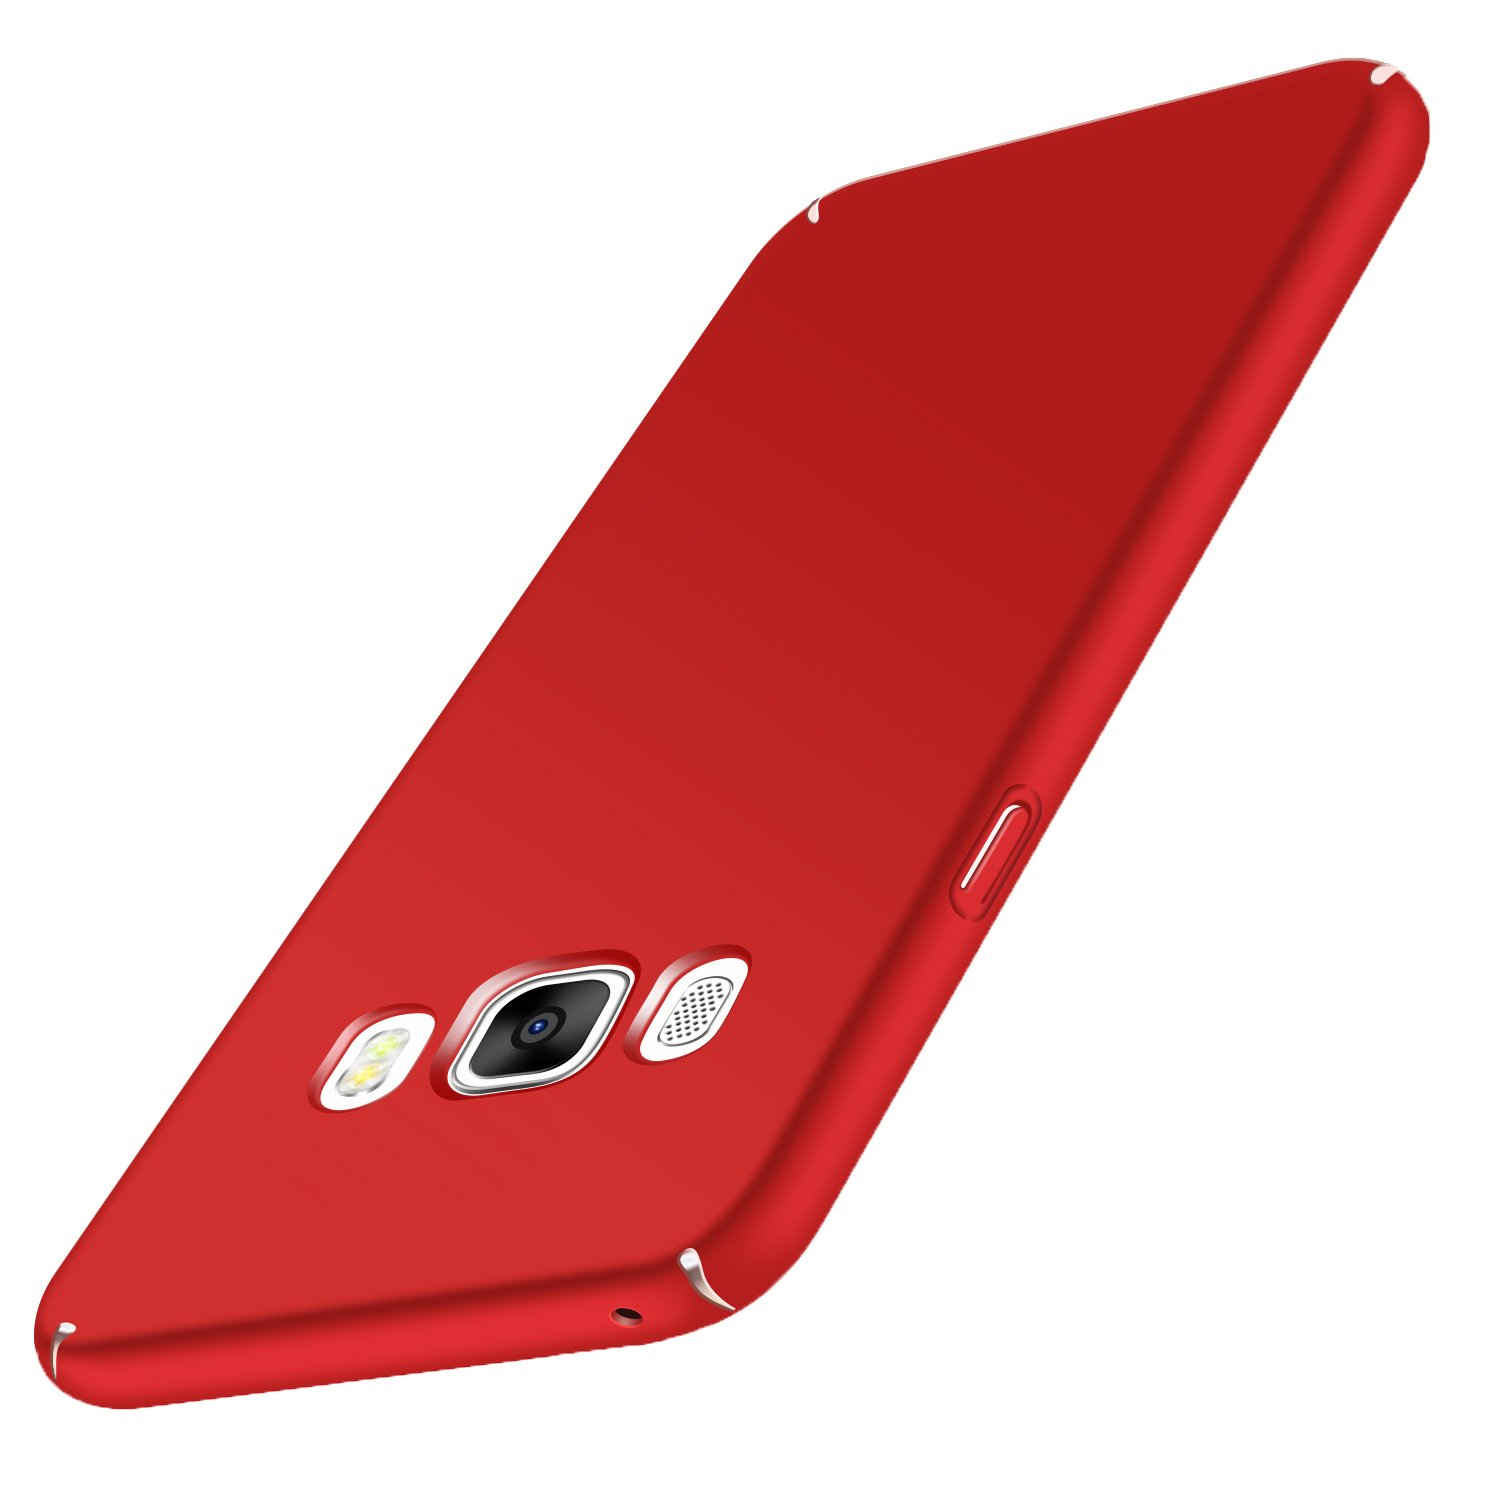 Samsung Galaxy J5 2016 Case Cover, Aostar Slim Thin Scratch Resistant Shock Proof Hard Plastic Protective Bumper Case Skin Shell for Samsung Galaxy J5 2016 (Red)